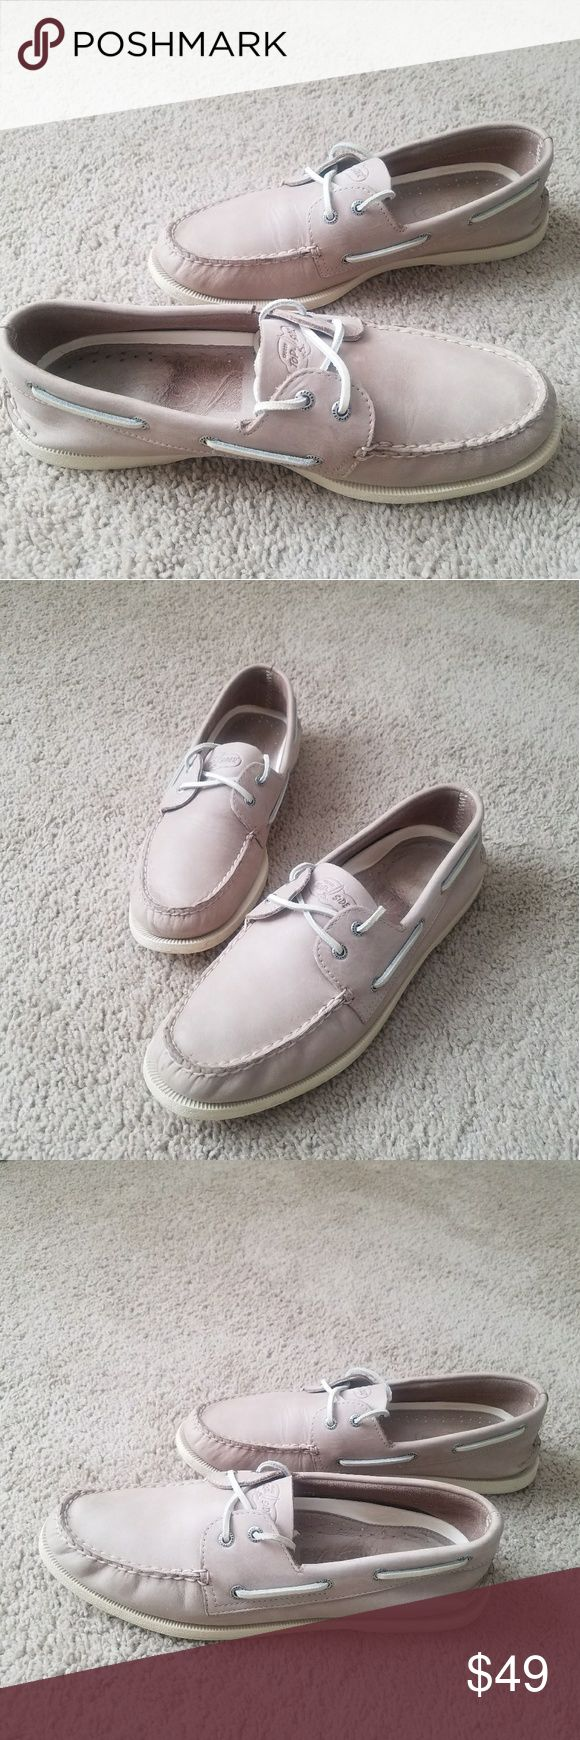 Sperry Top-Sider Men's Boat Shoes Beige Learher Sperry Top-Sider Mens Boat Shoes Beige Leather Upper 2 Eye Size 12M Excellent Condition! From Smoke/Pet Free Home Sperry Shoes Boat Shoes